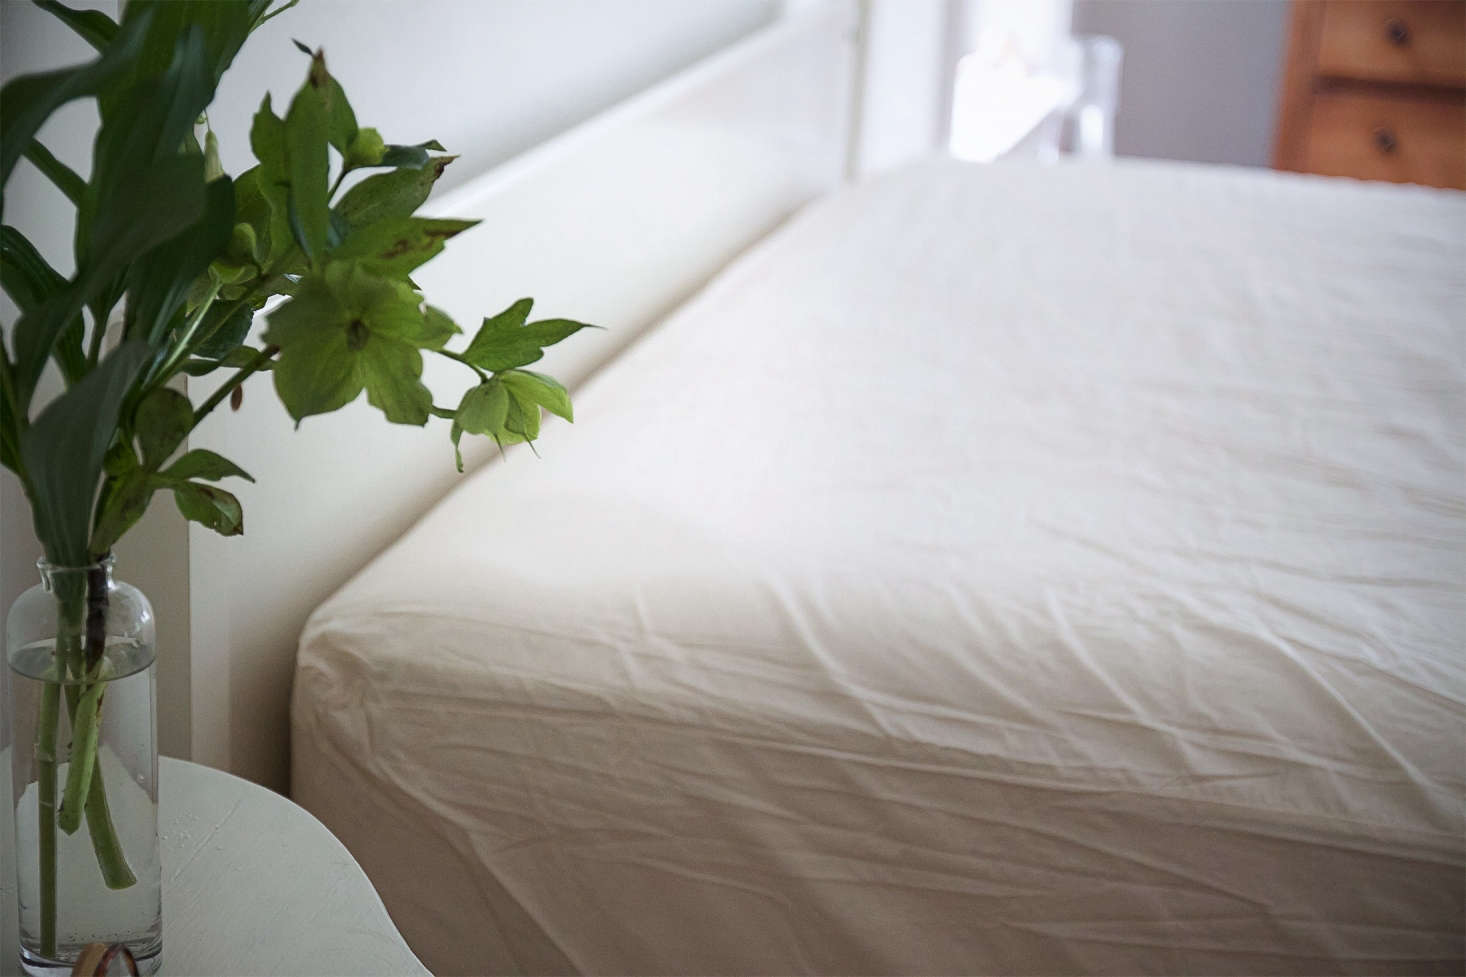 To protect my mattress, Ibought anAller-Ease Naturals Organic Cotton Allergy Protection Fitted Mattress Protector from Amazon; $56.